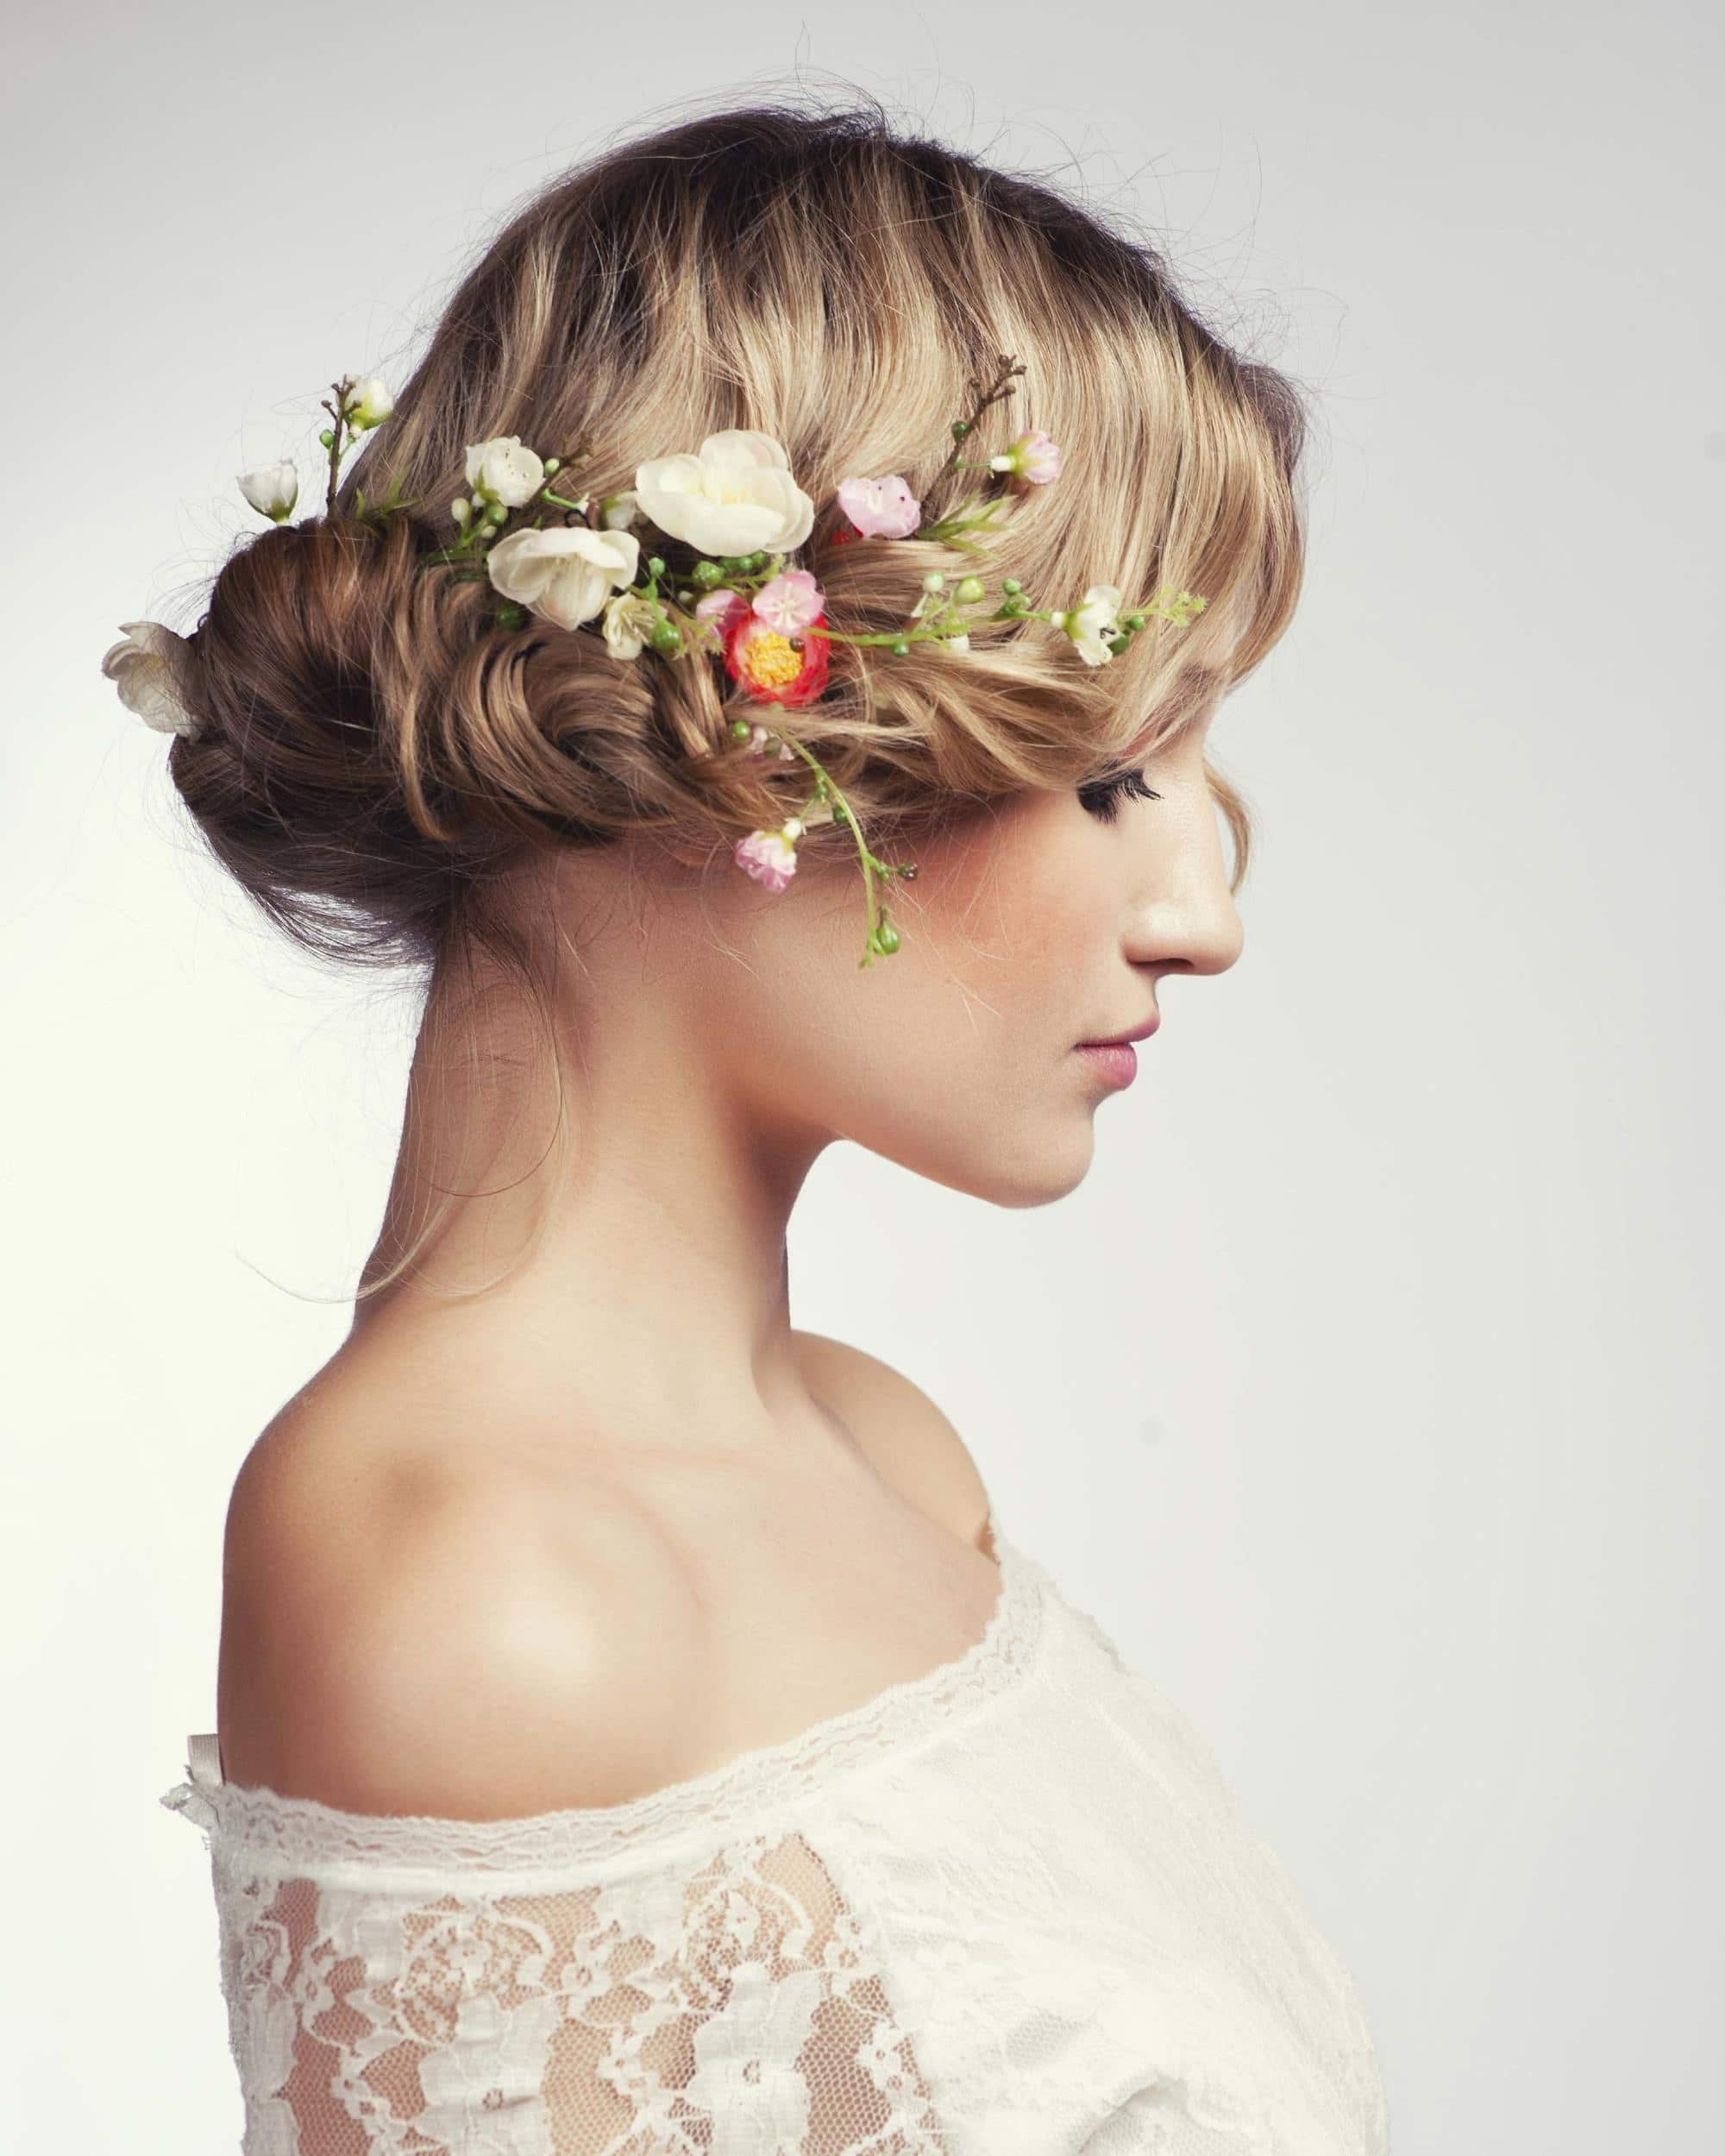 48 Bridal Hairstyles To Inspire Your Wedding Day Look Inside Famous Undone Low Bun Bridal Hairstyles With Floral Headband (Gallery 11 of 20)